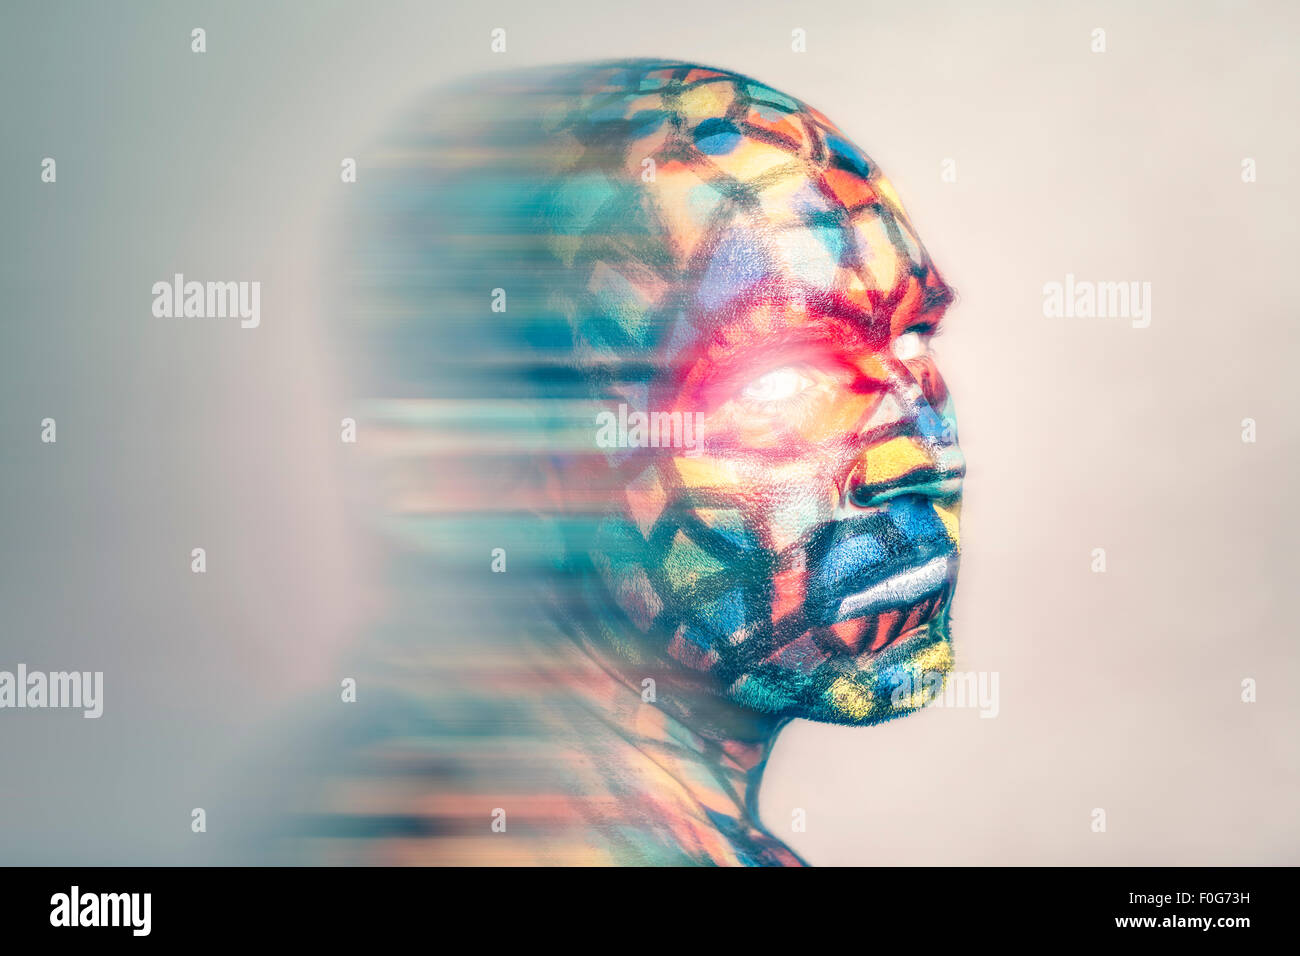 Superhero portrait, colorful face art with motion blur effect. - Stock Image